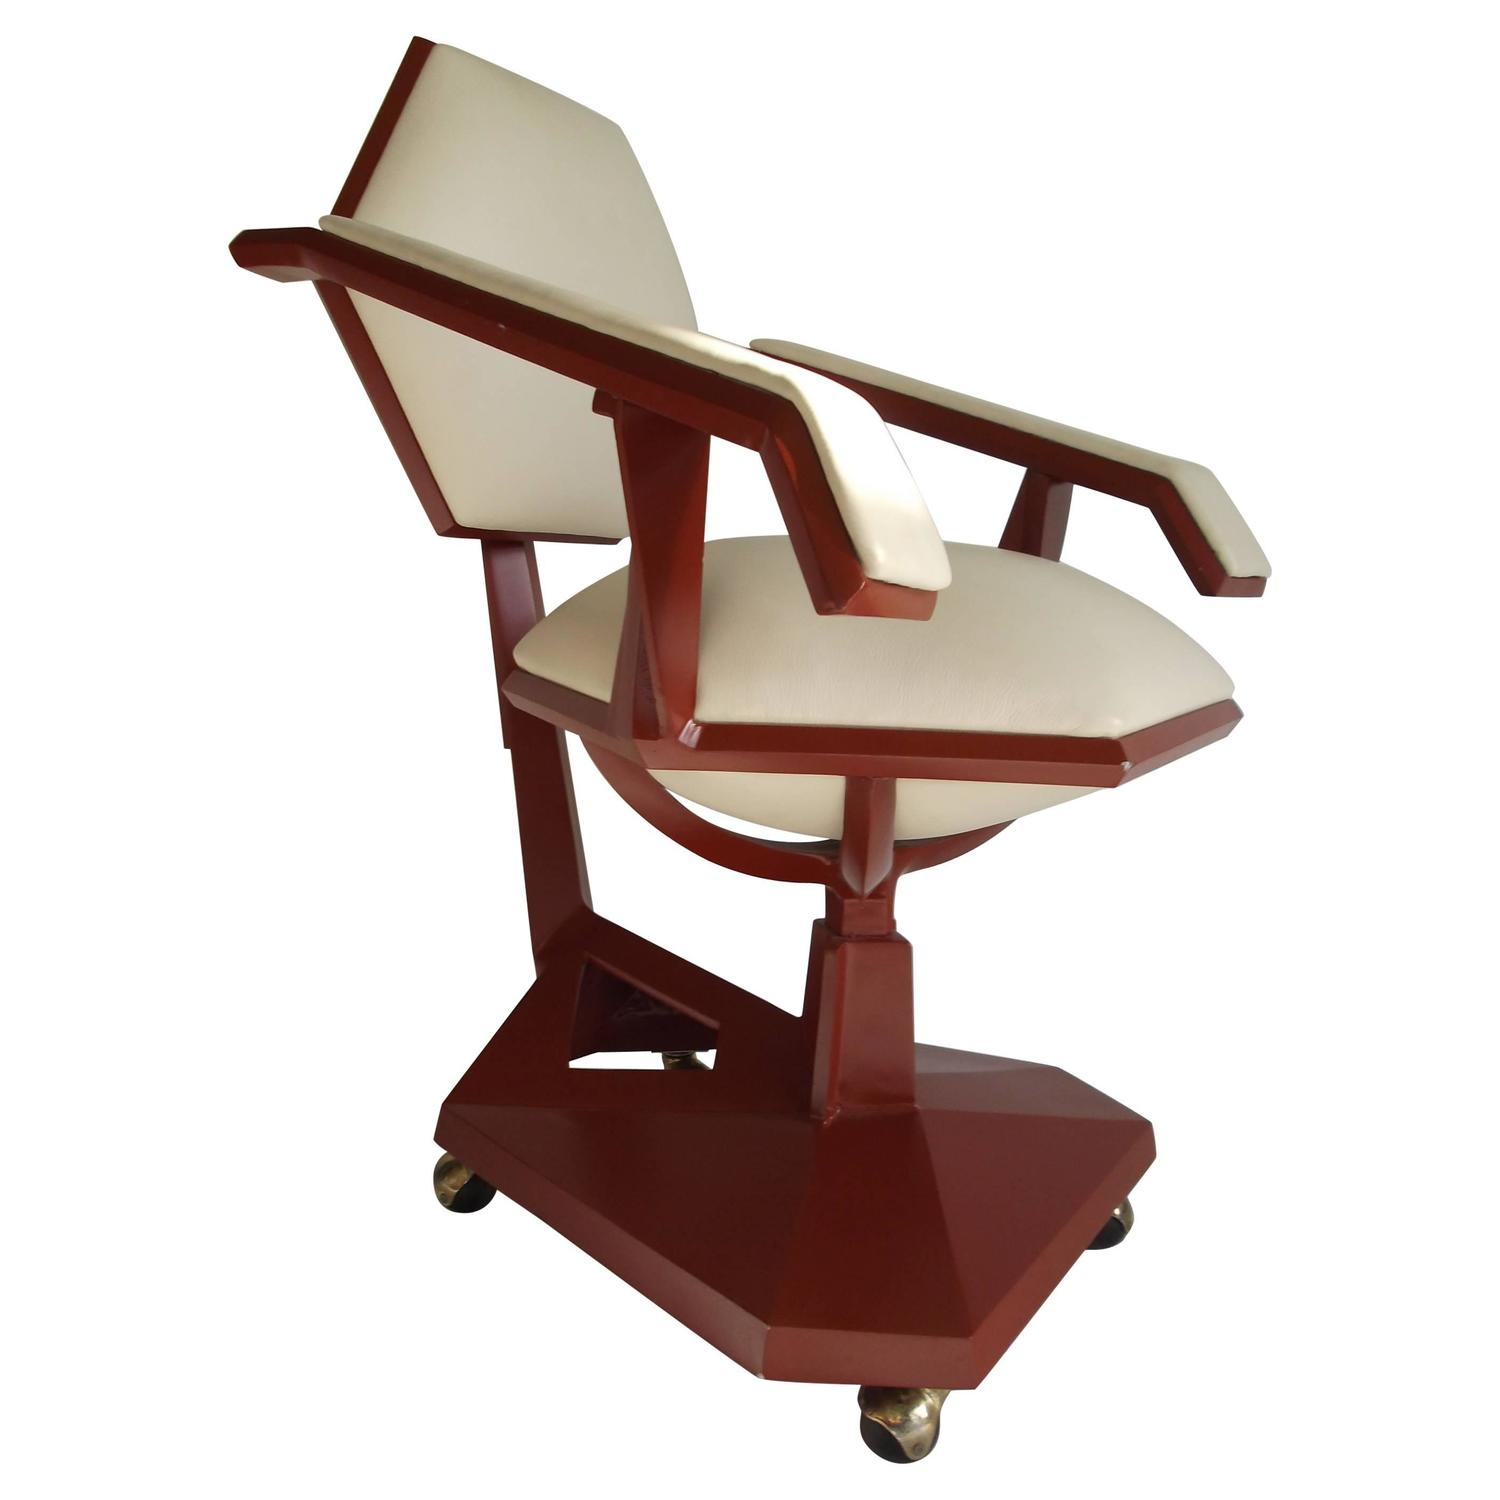 Incroyable Frank Lloyd Wright Price Tower Secretary Armchair, 1955 For Sale At 1stdibs